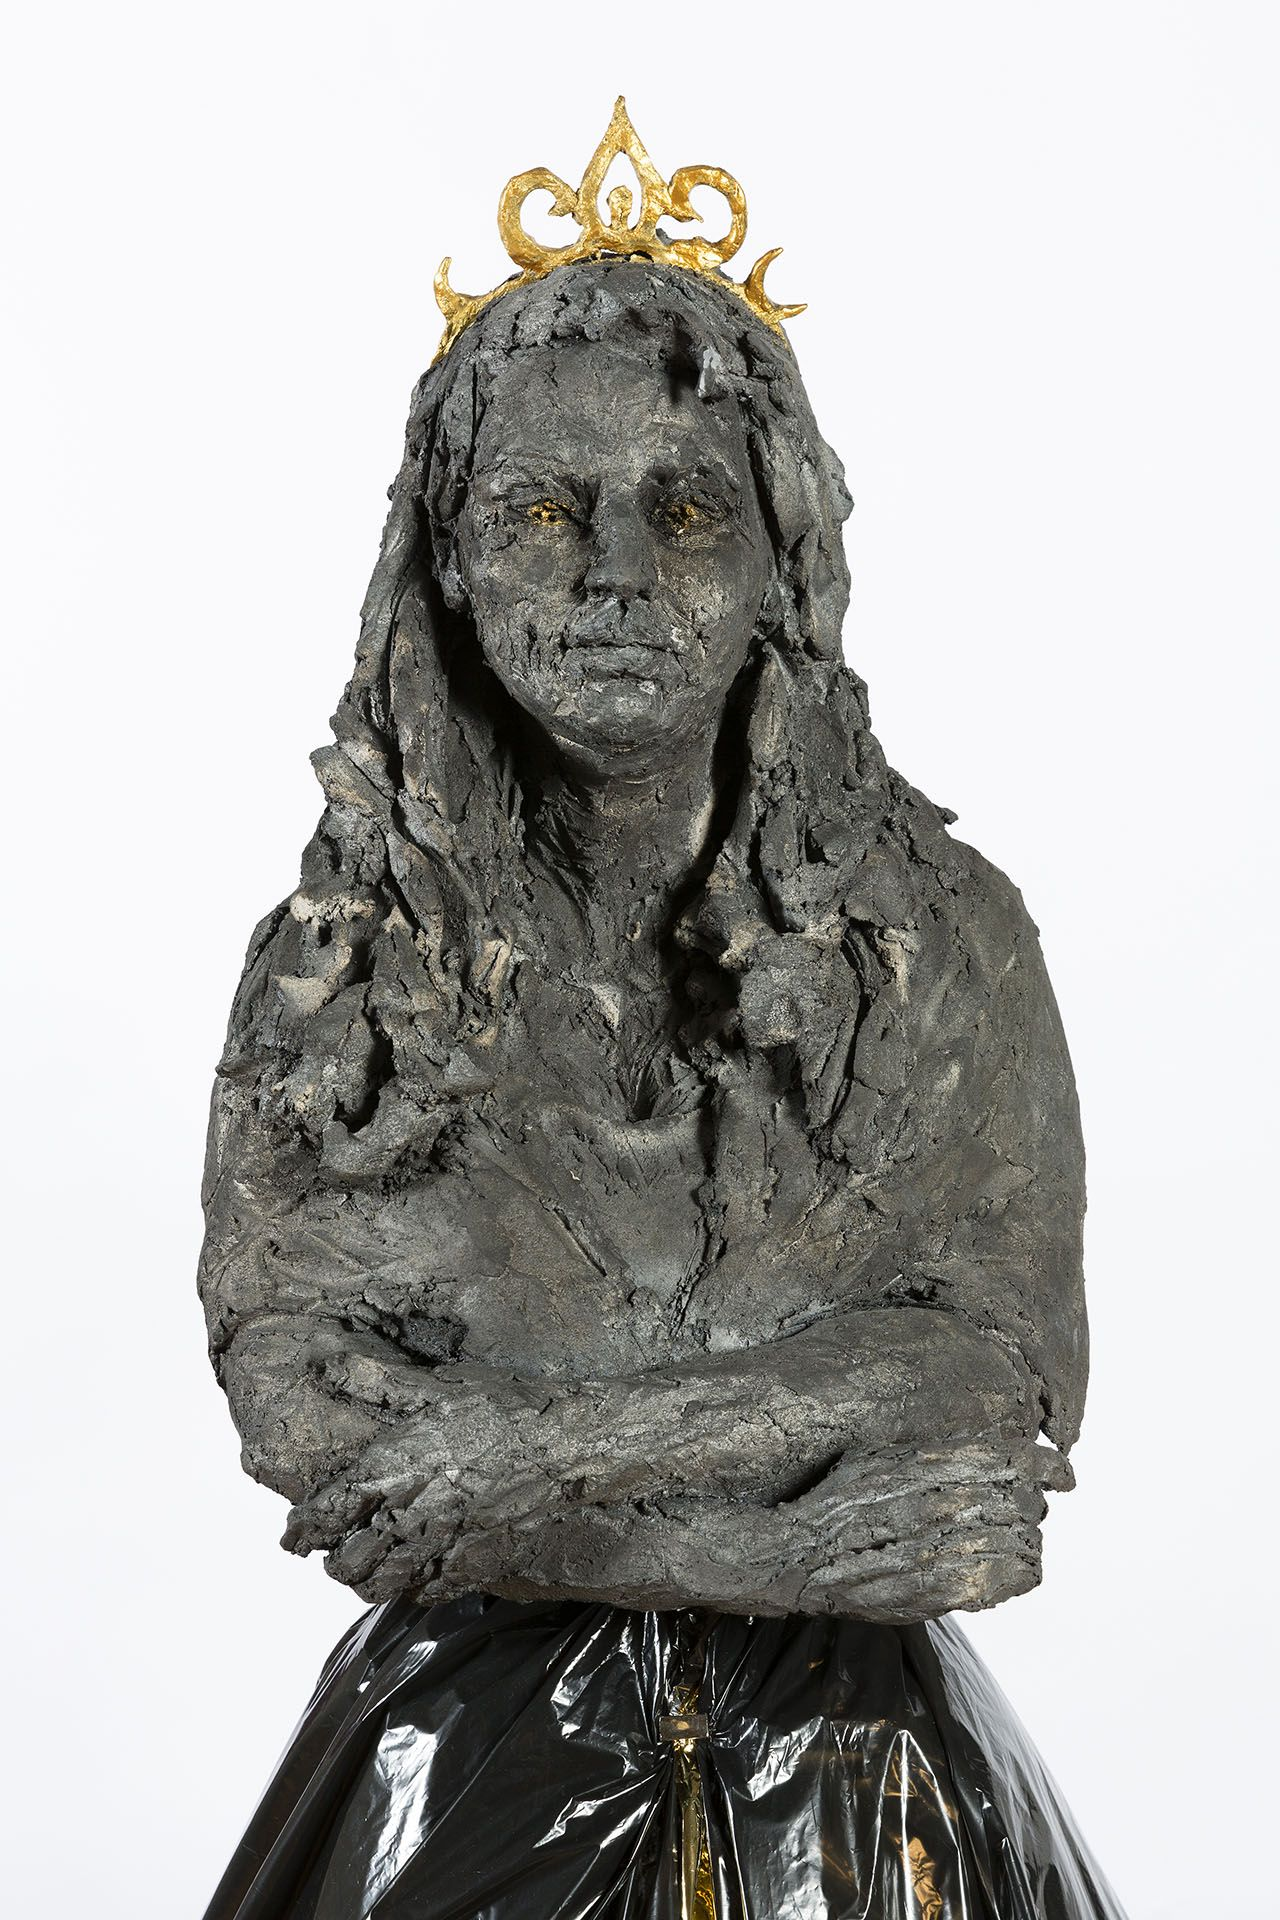 Princesse Sara,Cécile Raynal,Sculpture contemporaine, detail 1